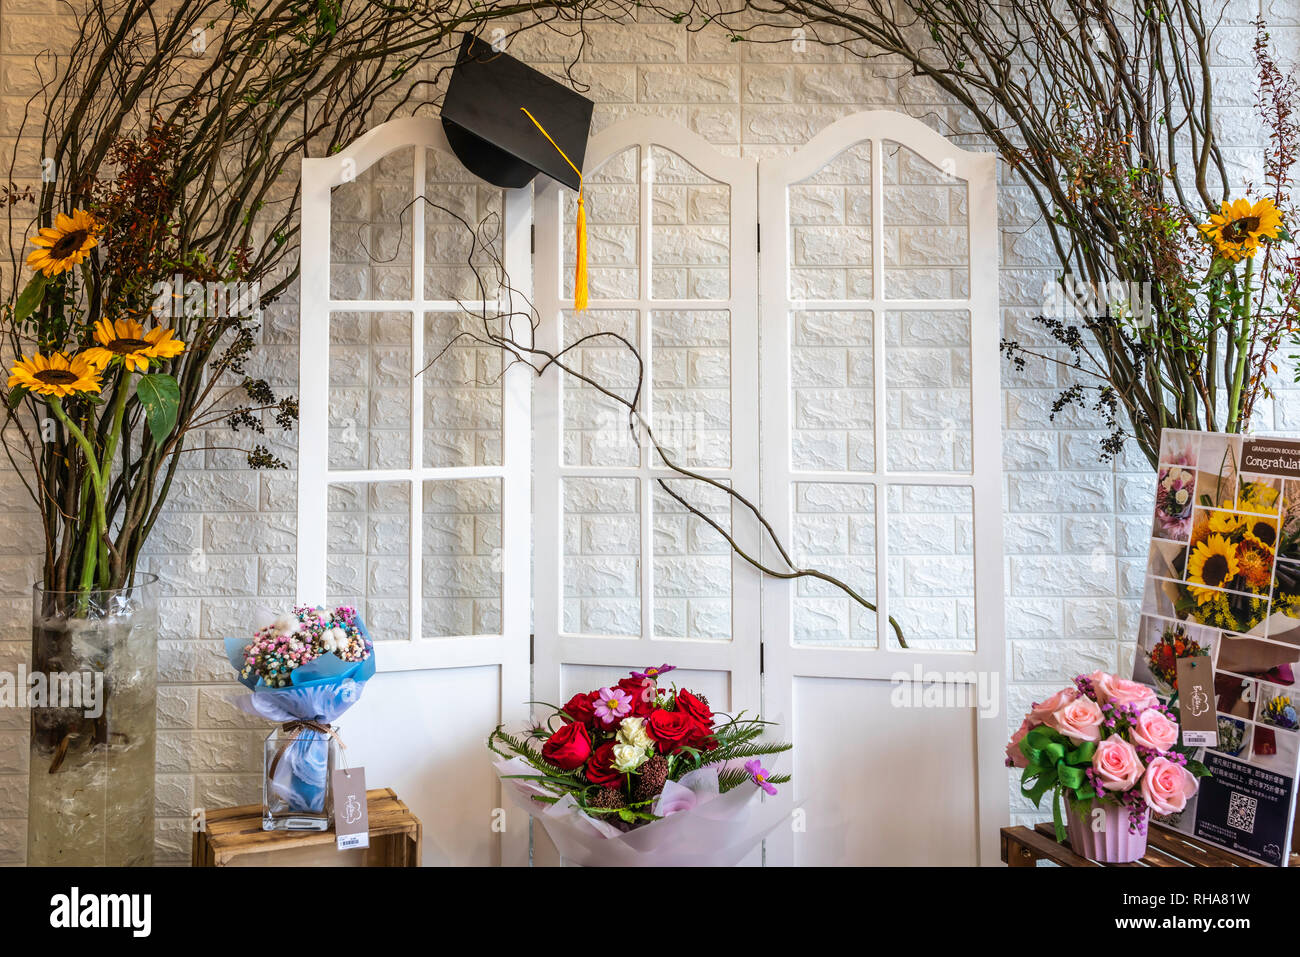 A graduation display in a flower shop in the Flower Market of Kowloon, Hong Kong, China, Asia. - Stock Image